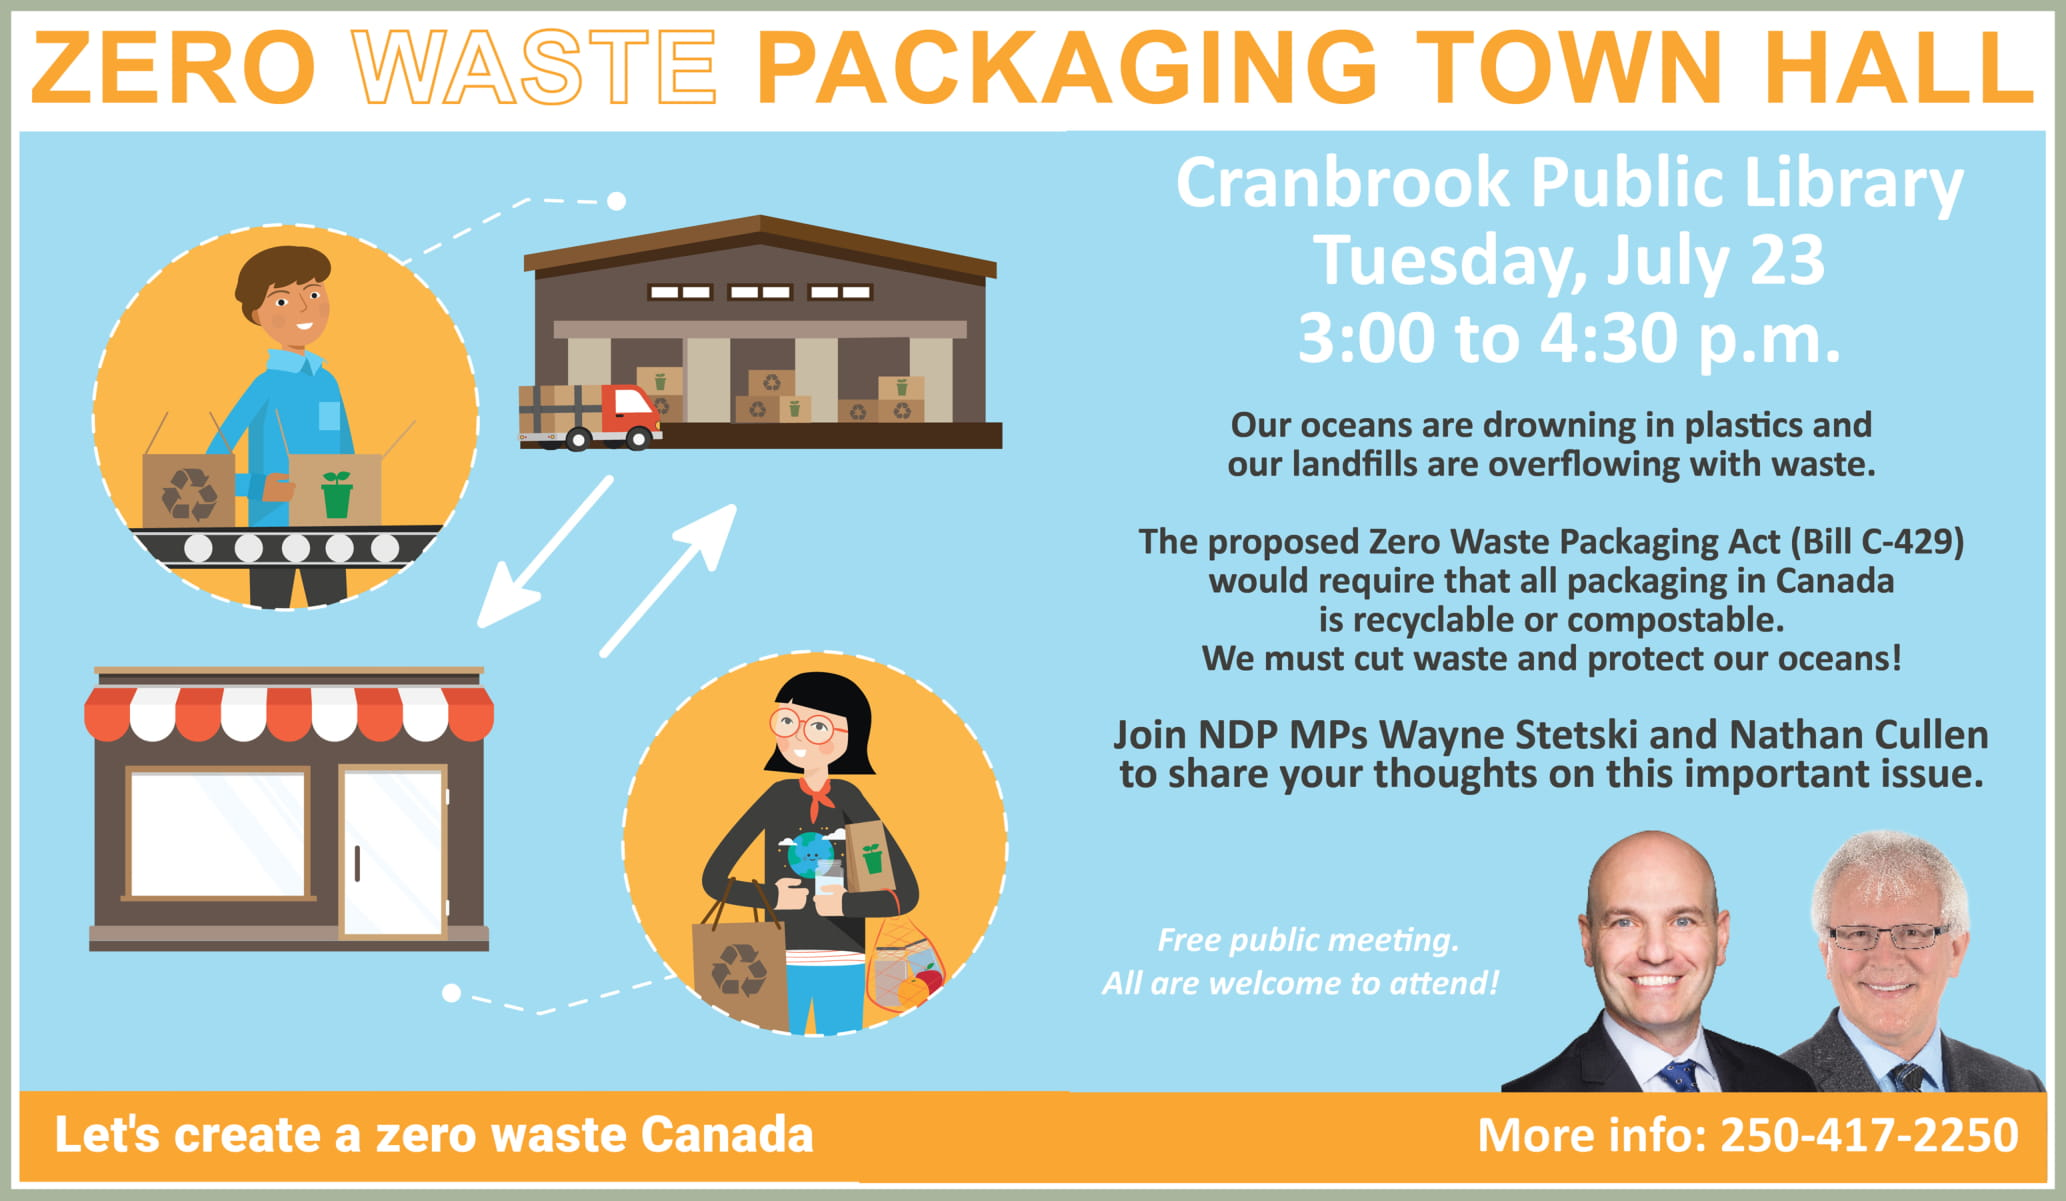 Plastics Town hall meeting with Wayne Stetski and Nathan Cullen @ Cranbrook Public Library Manual Training Room